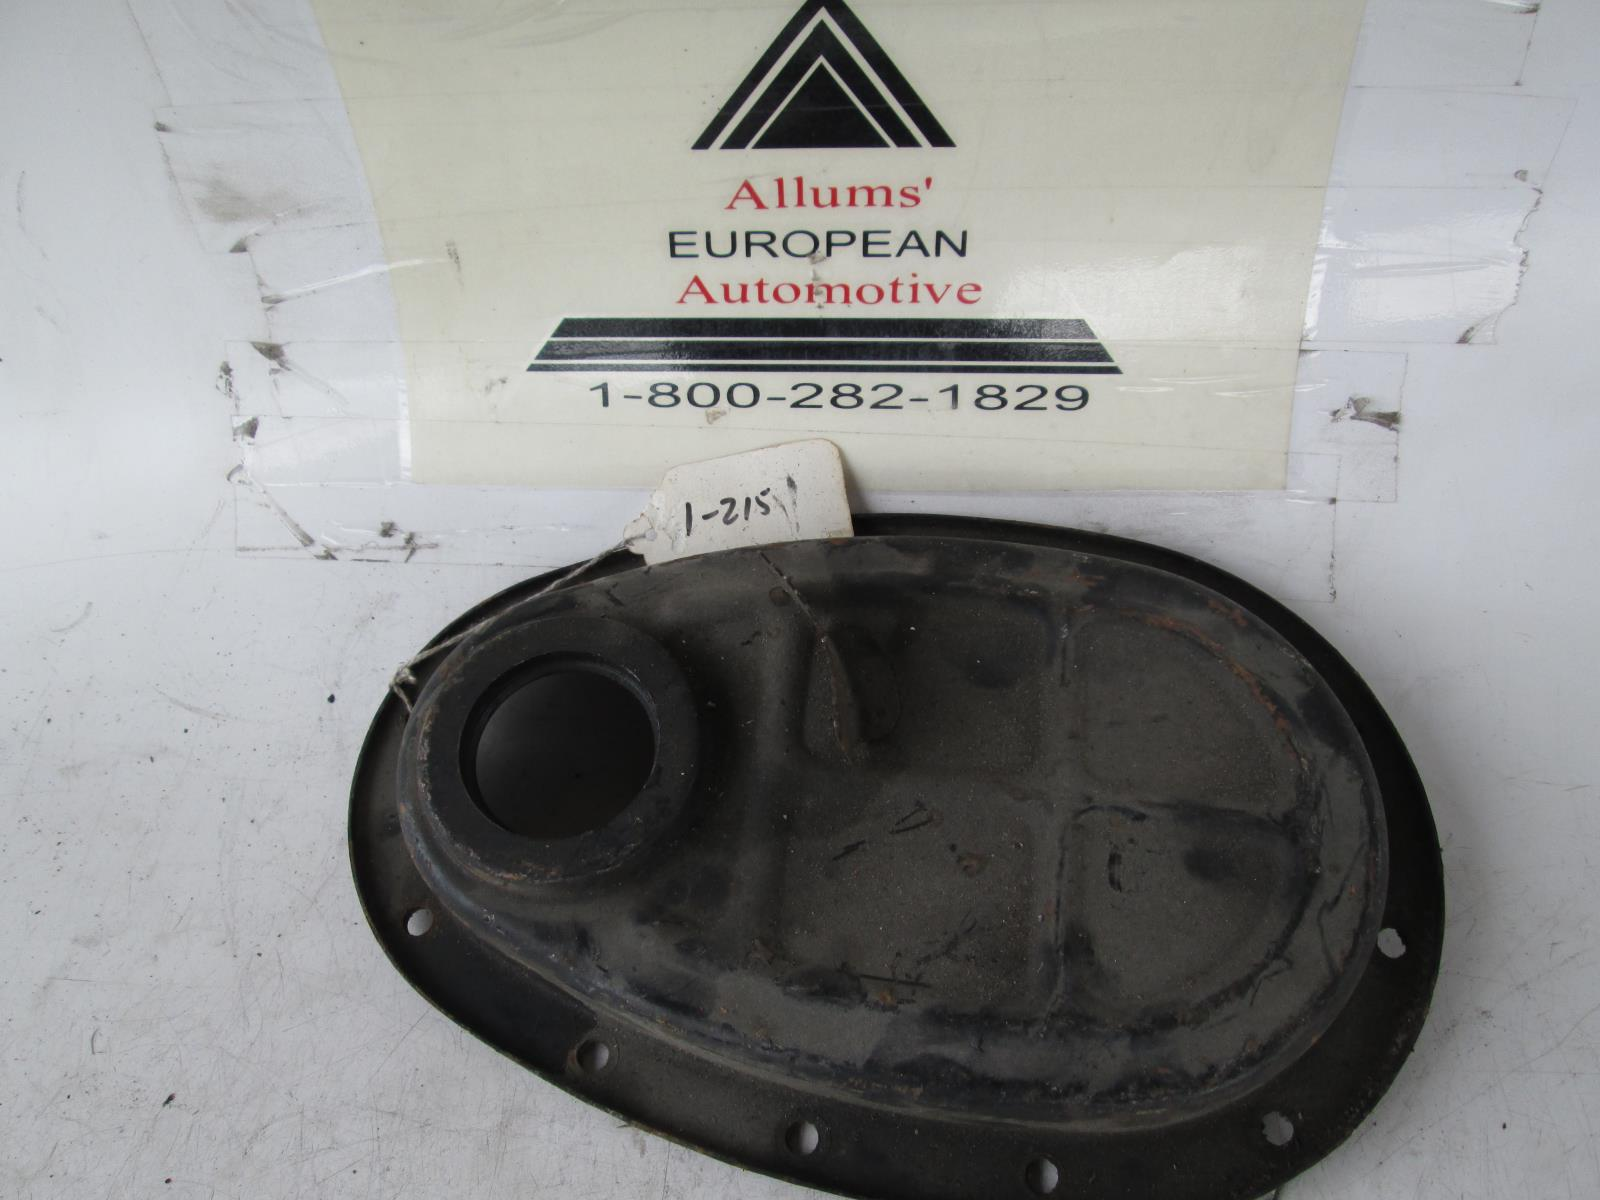 Triumph Spitfire Timing Cover 1 215 Allums Import